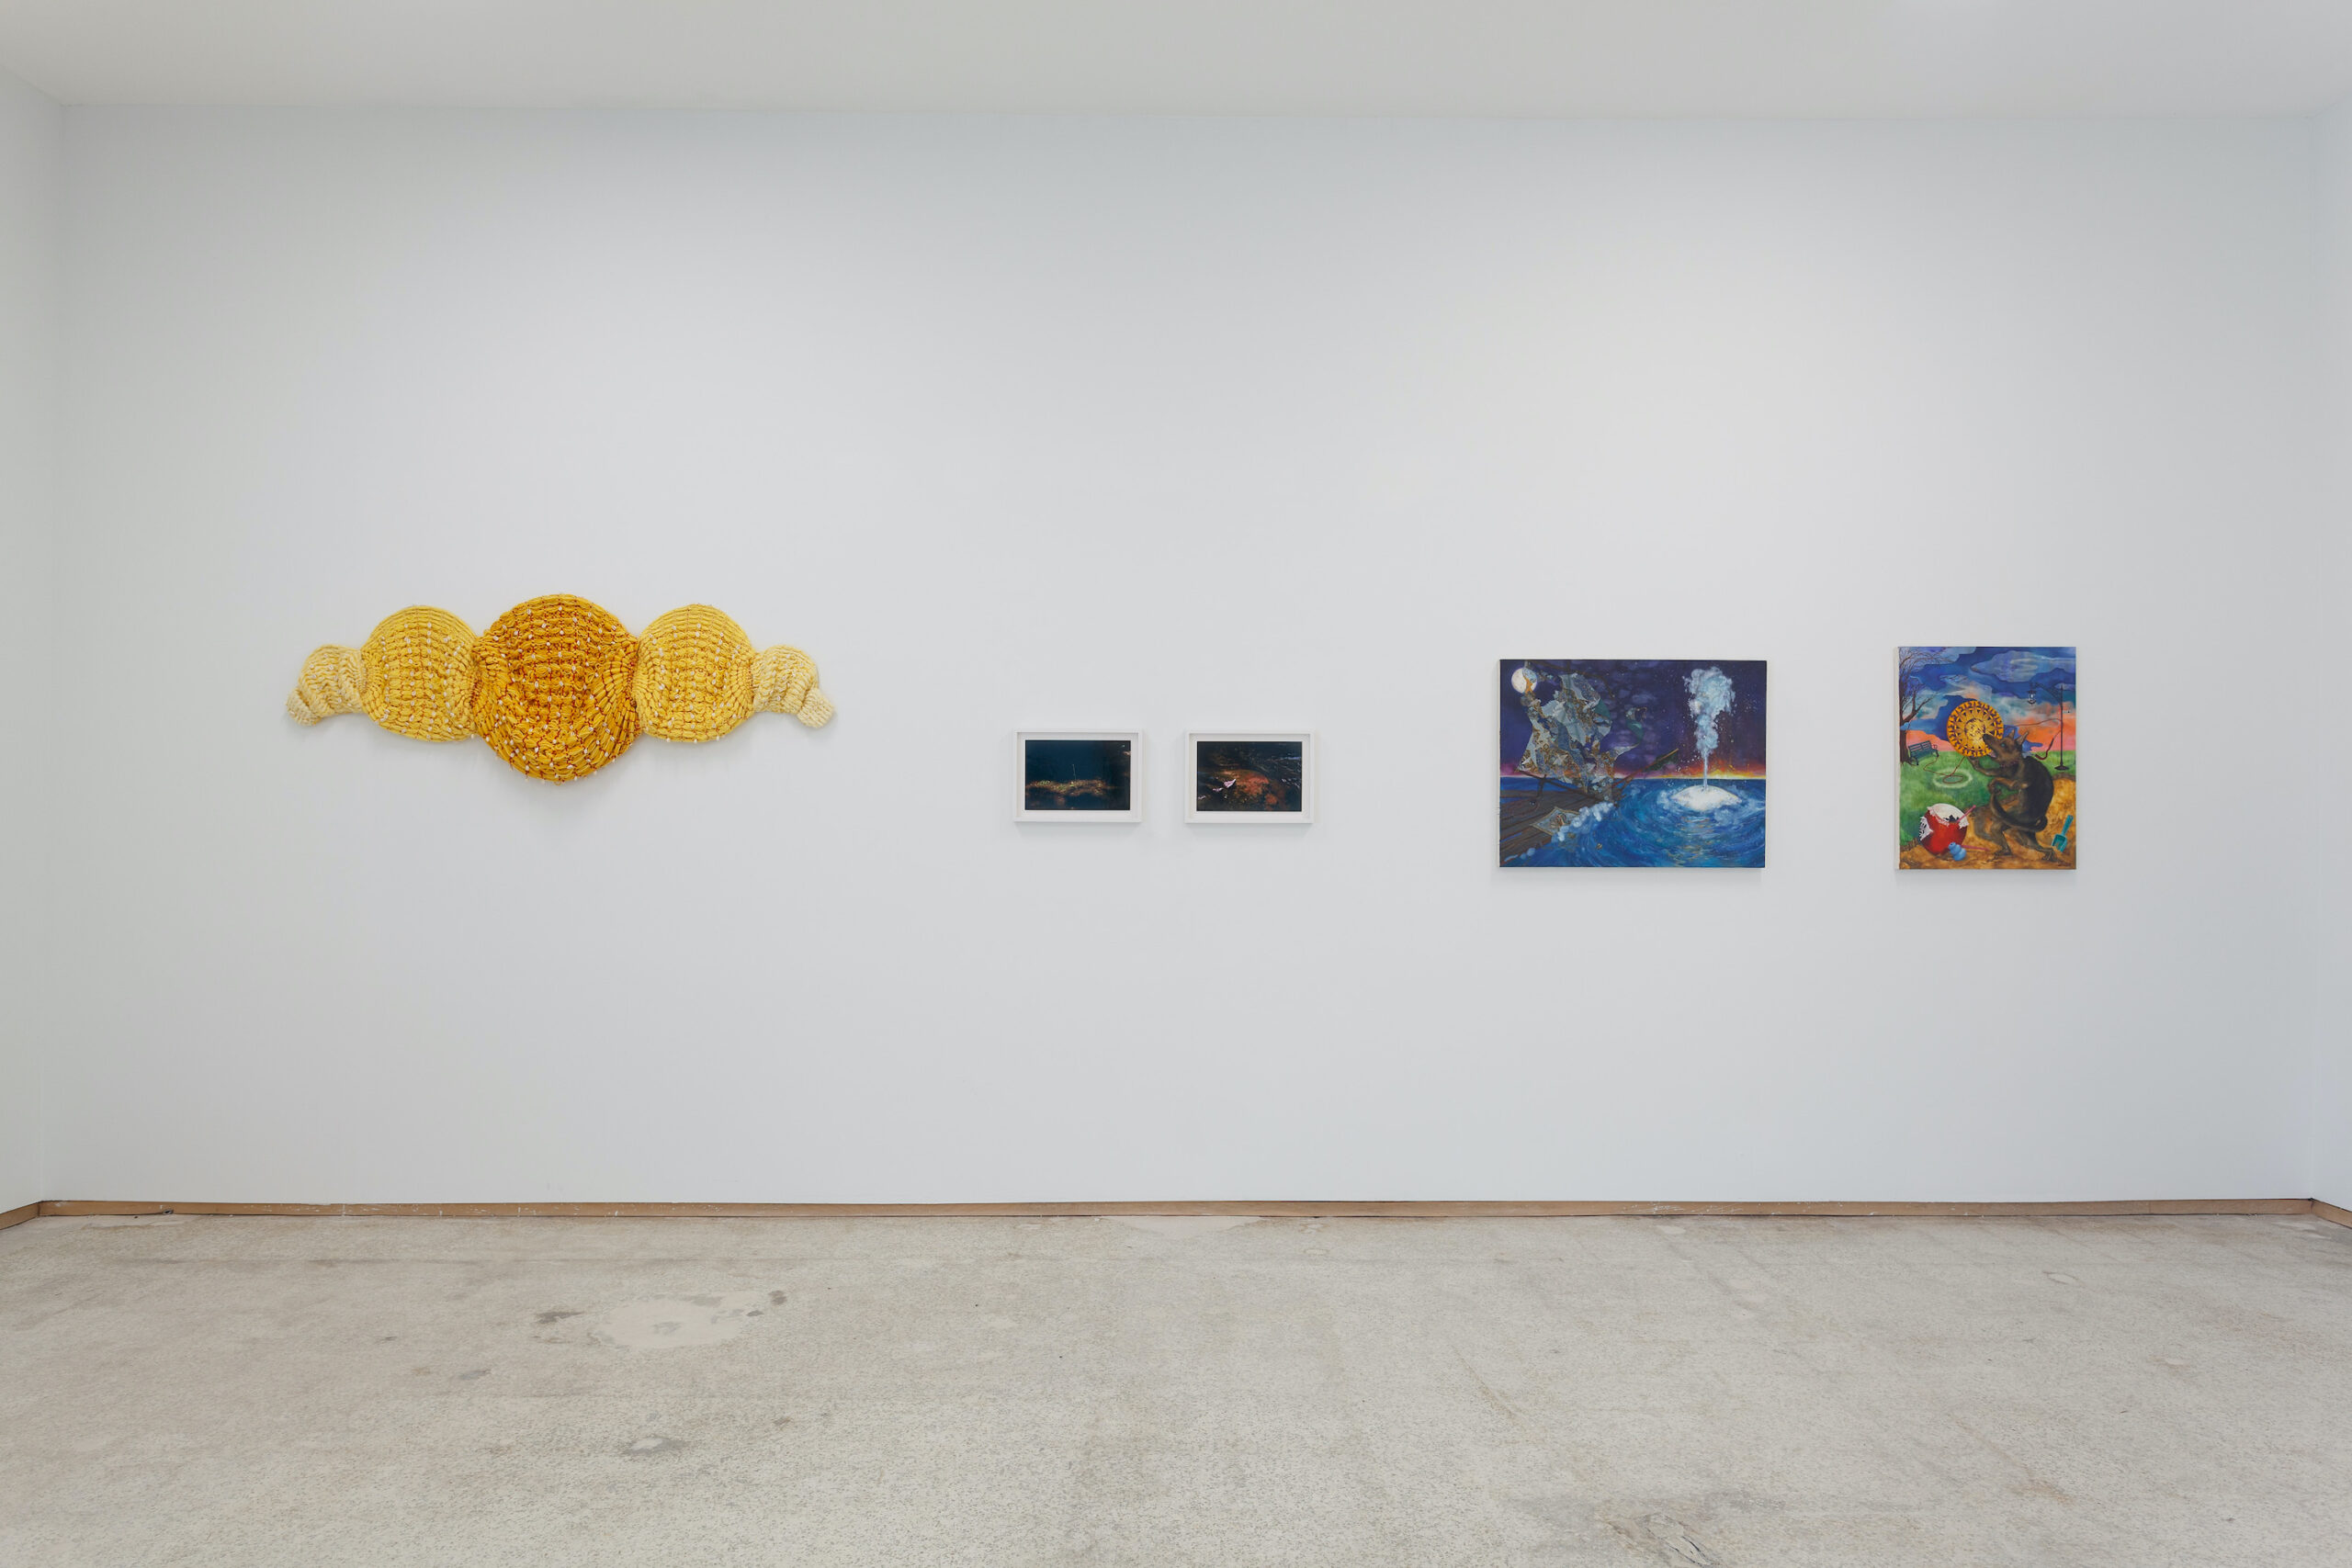 our constellations: astral embraces and tactual consciousness (Installation view c), 2021, Emerson Dorsch, Miami FL